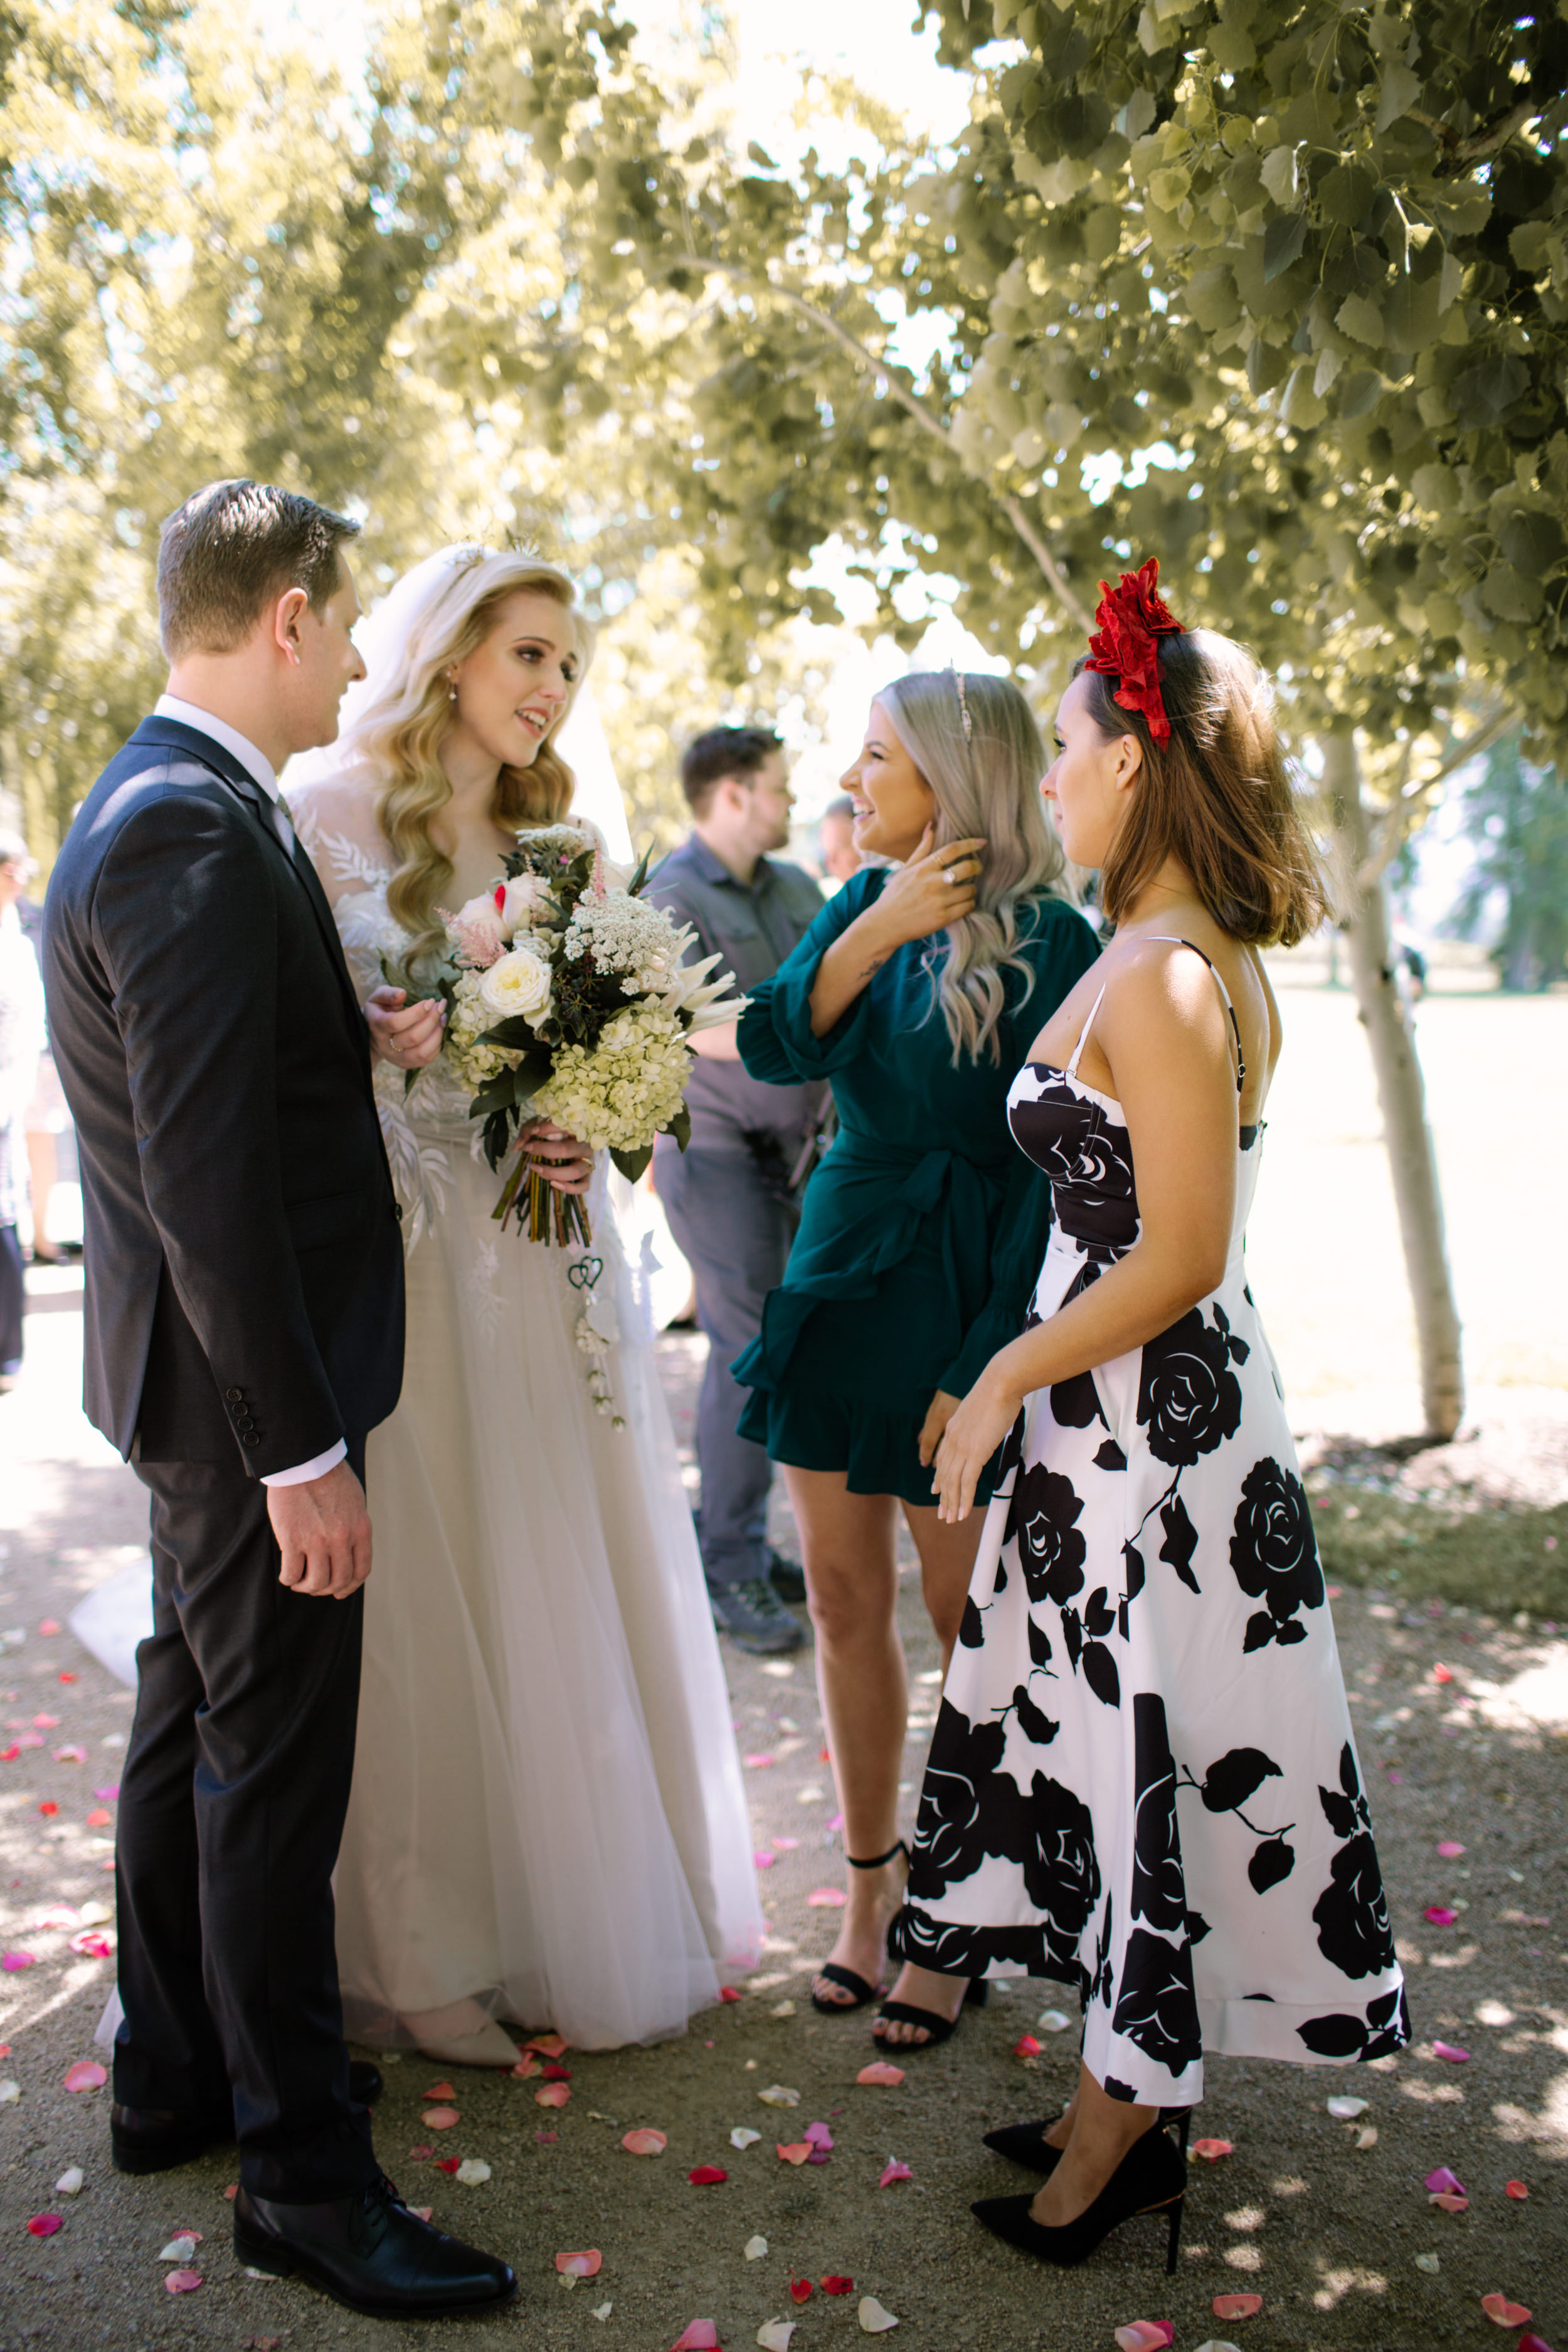 I-Got-You-Babe-&.Co.-Stones-of-the-Yarra-Valley-Wedding-Beverly-Ross0084.JPG